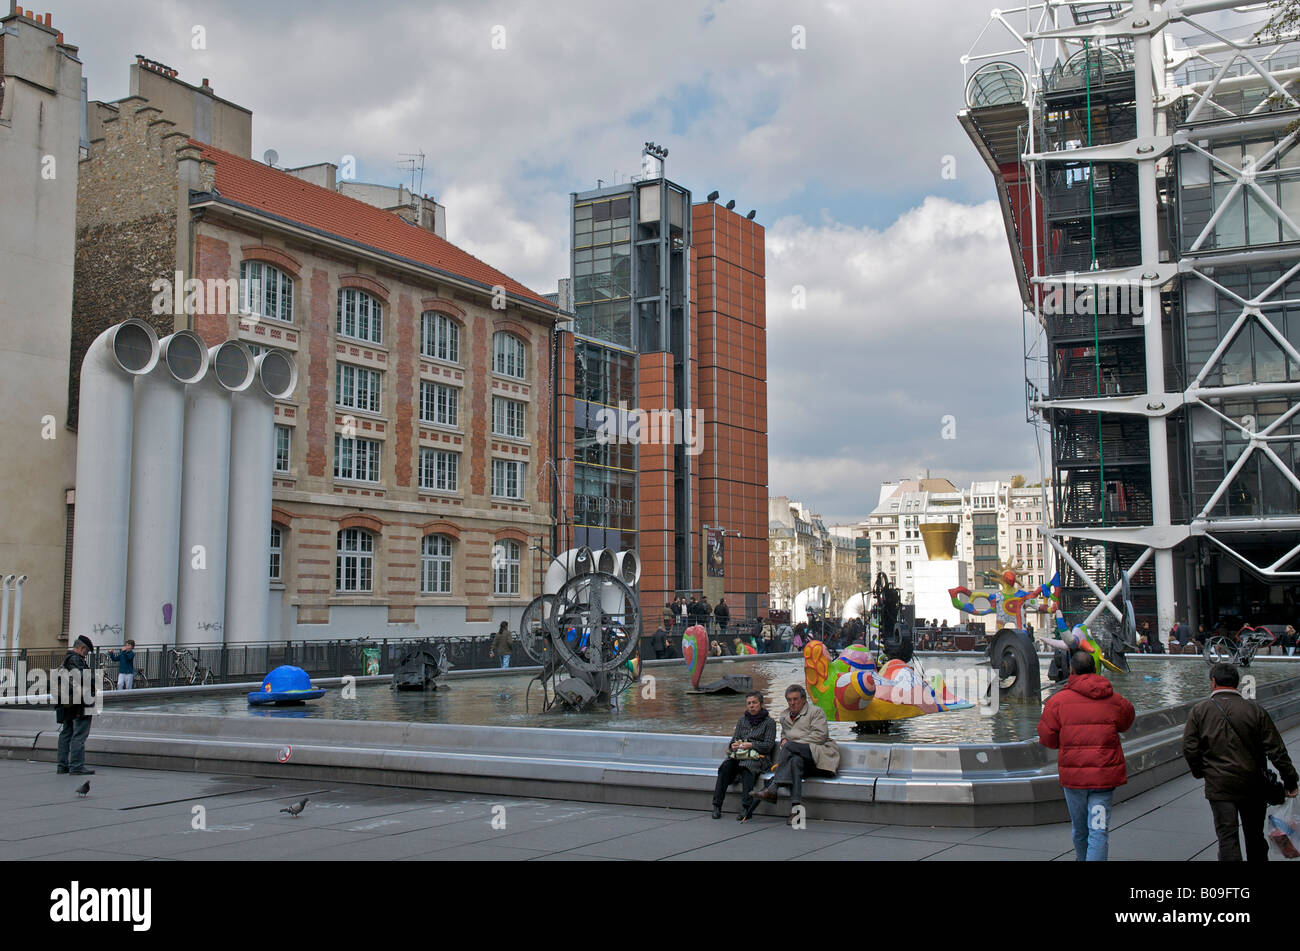 Fountain and Kinetic Sculpture in Place Igor Stravinsky  near the Pompidou Centre in Paris - Stock Image